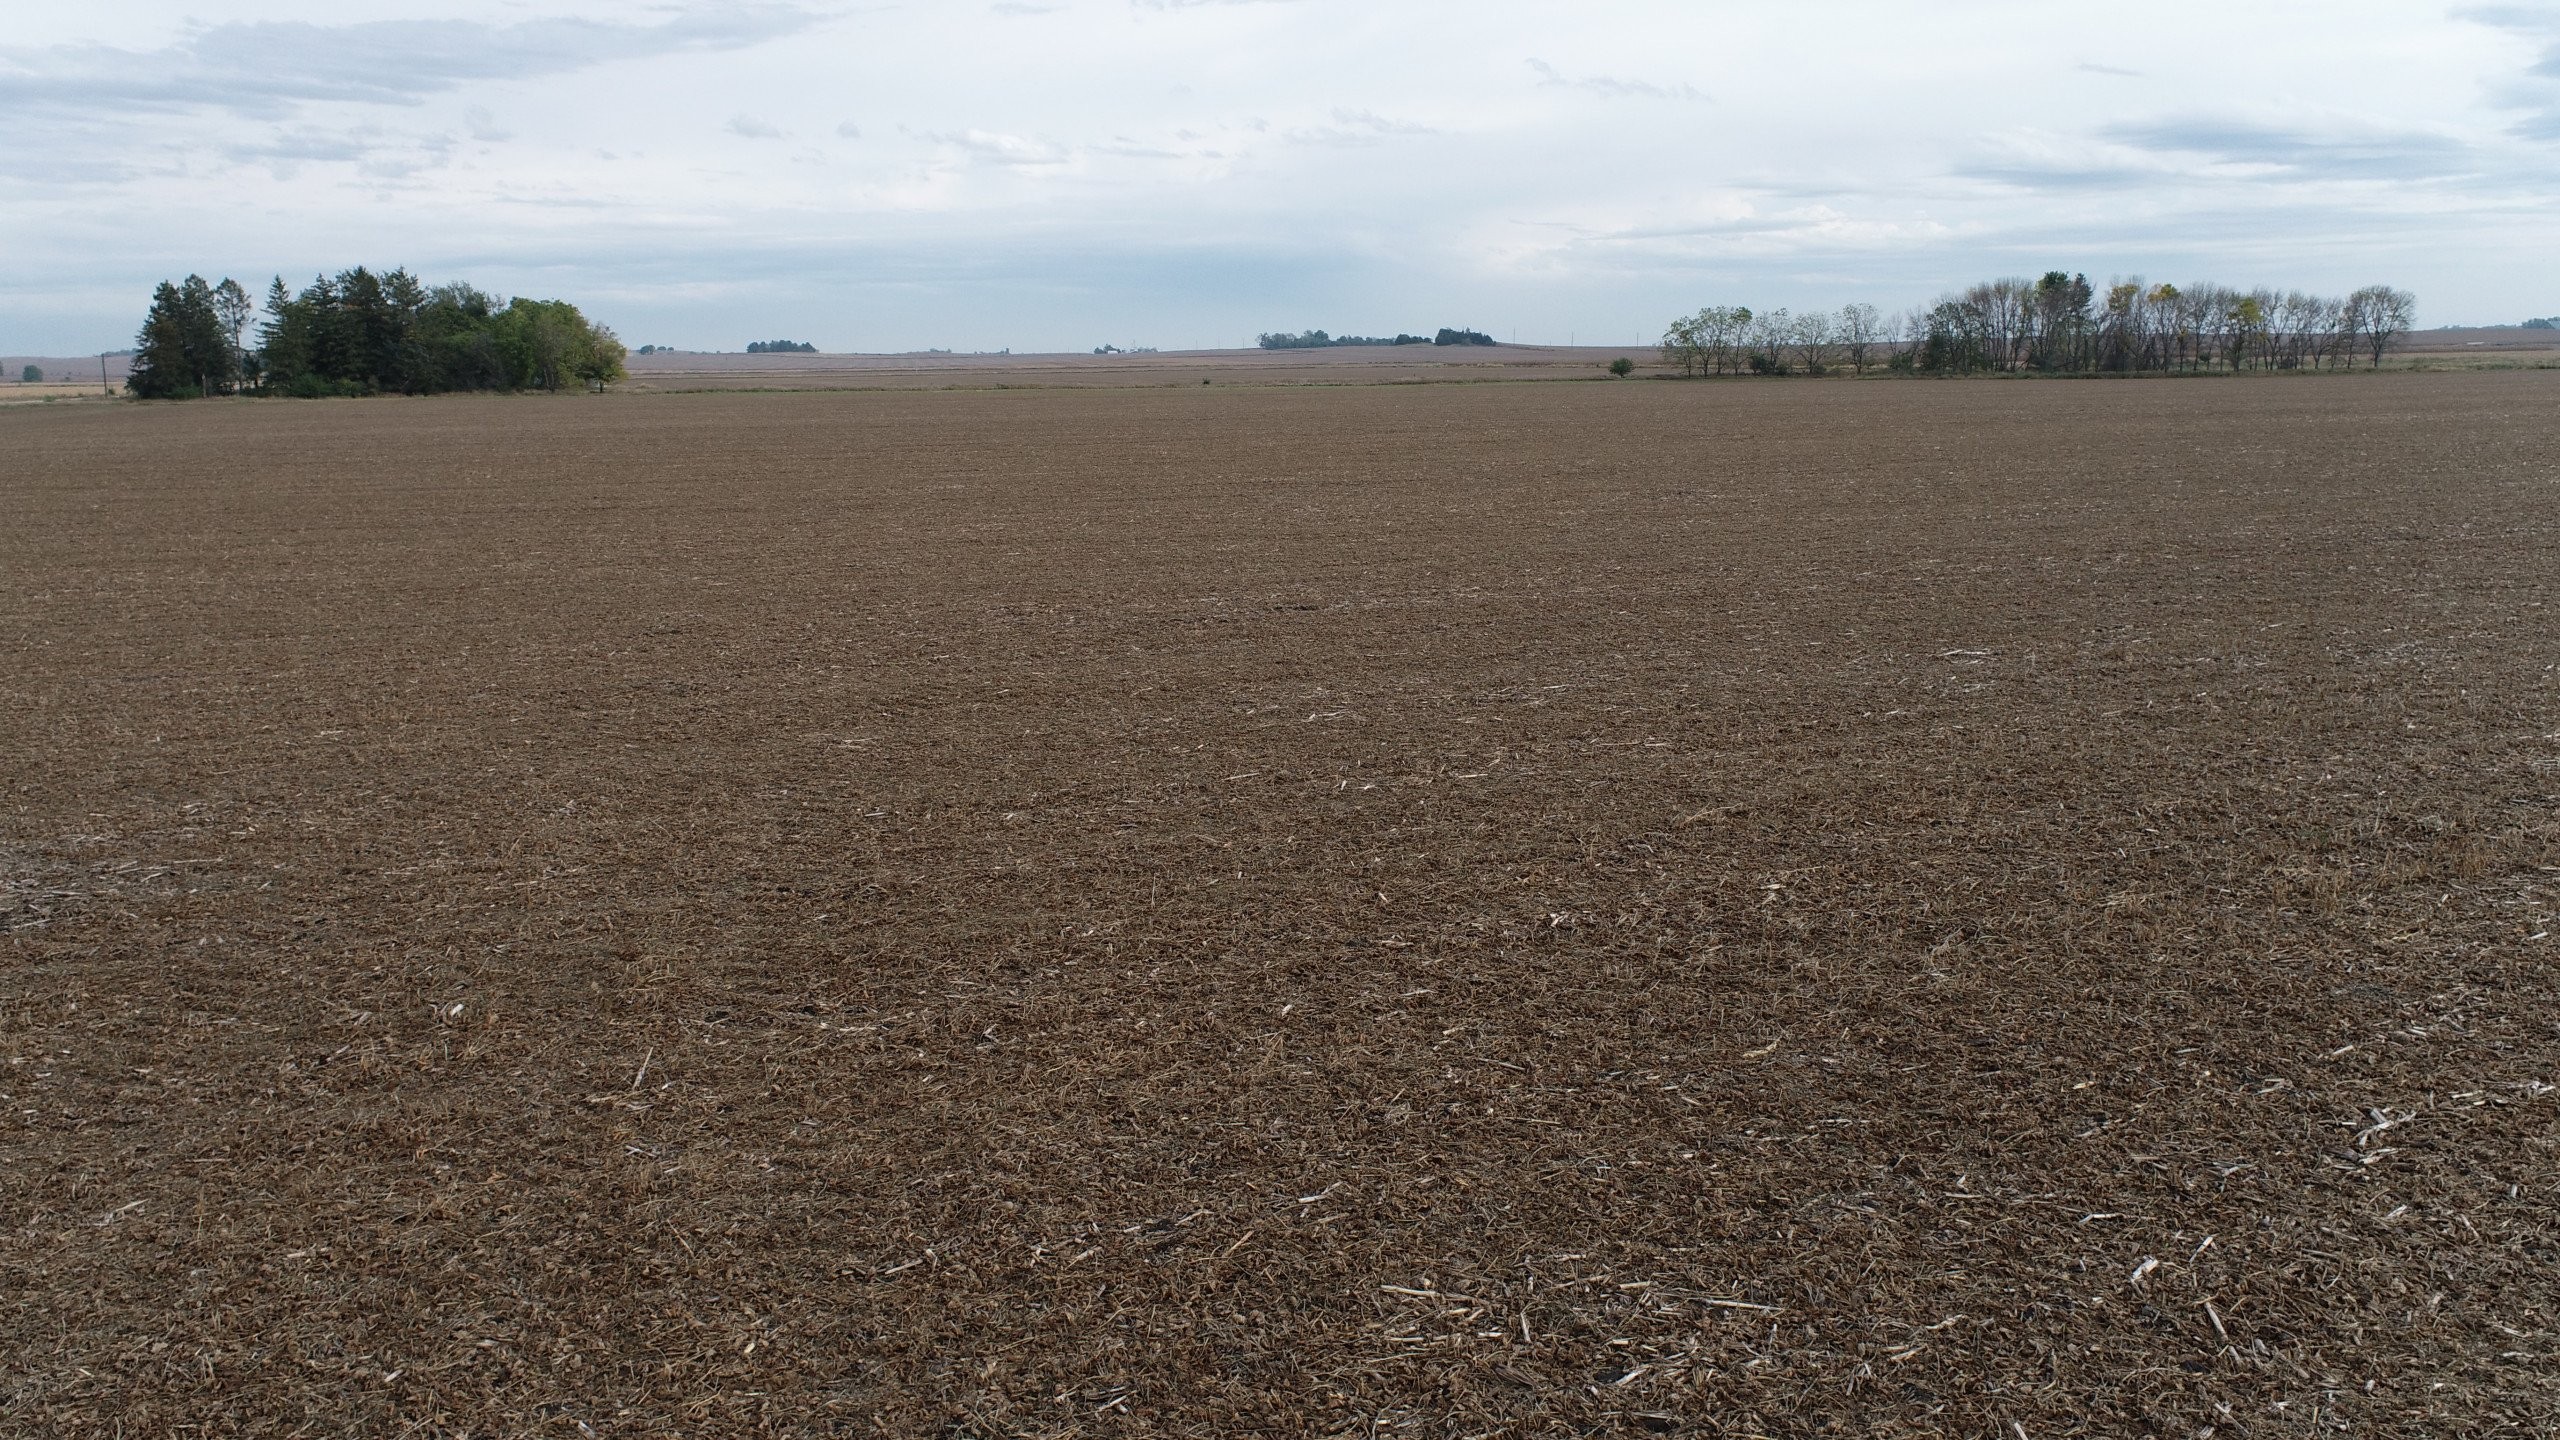 auctions-clinton-county-iowa-80-acres-listing-number-15792-DJI_0091-3.jpg